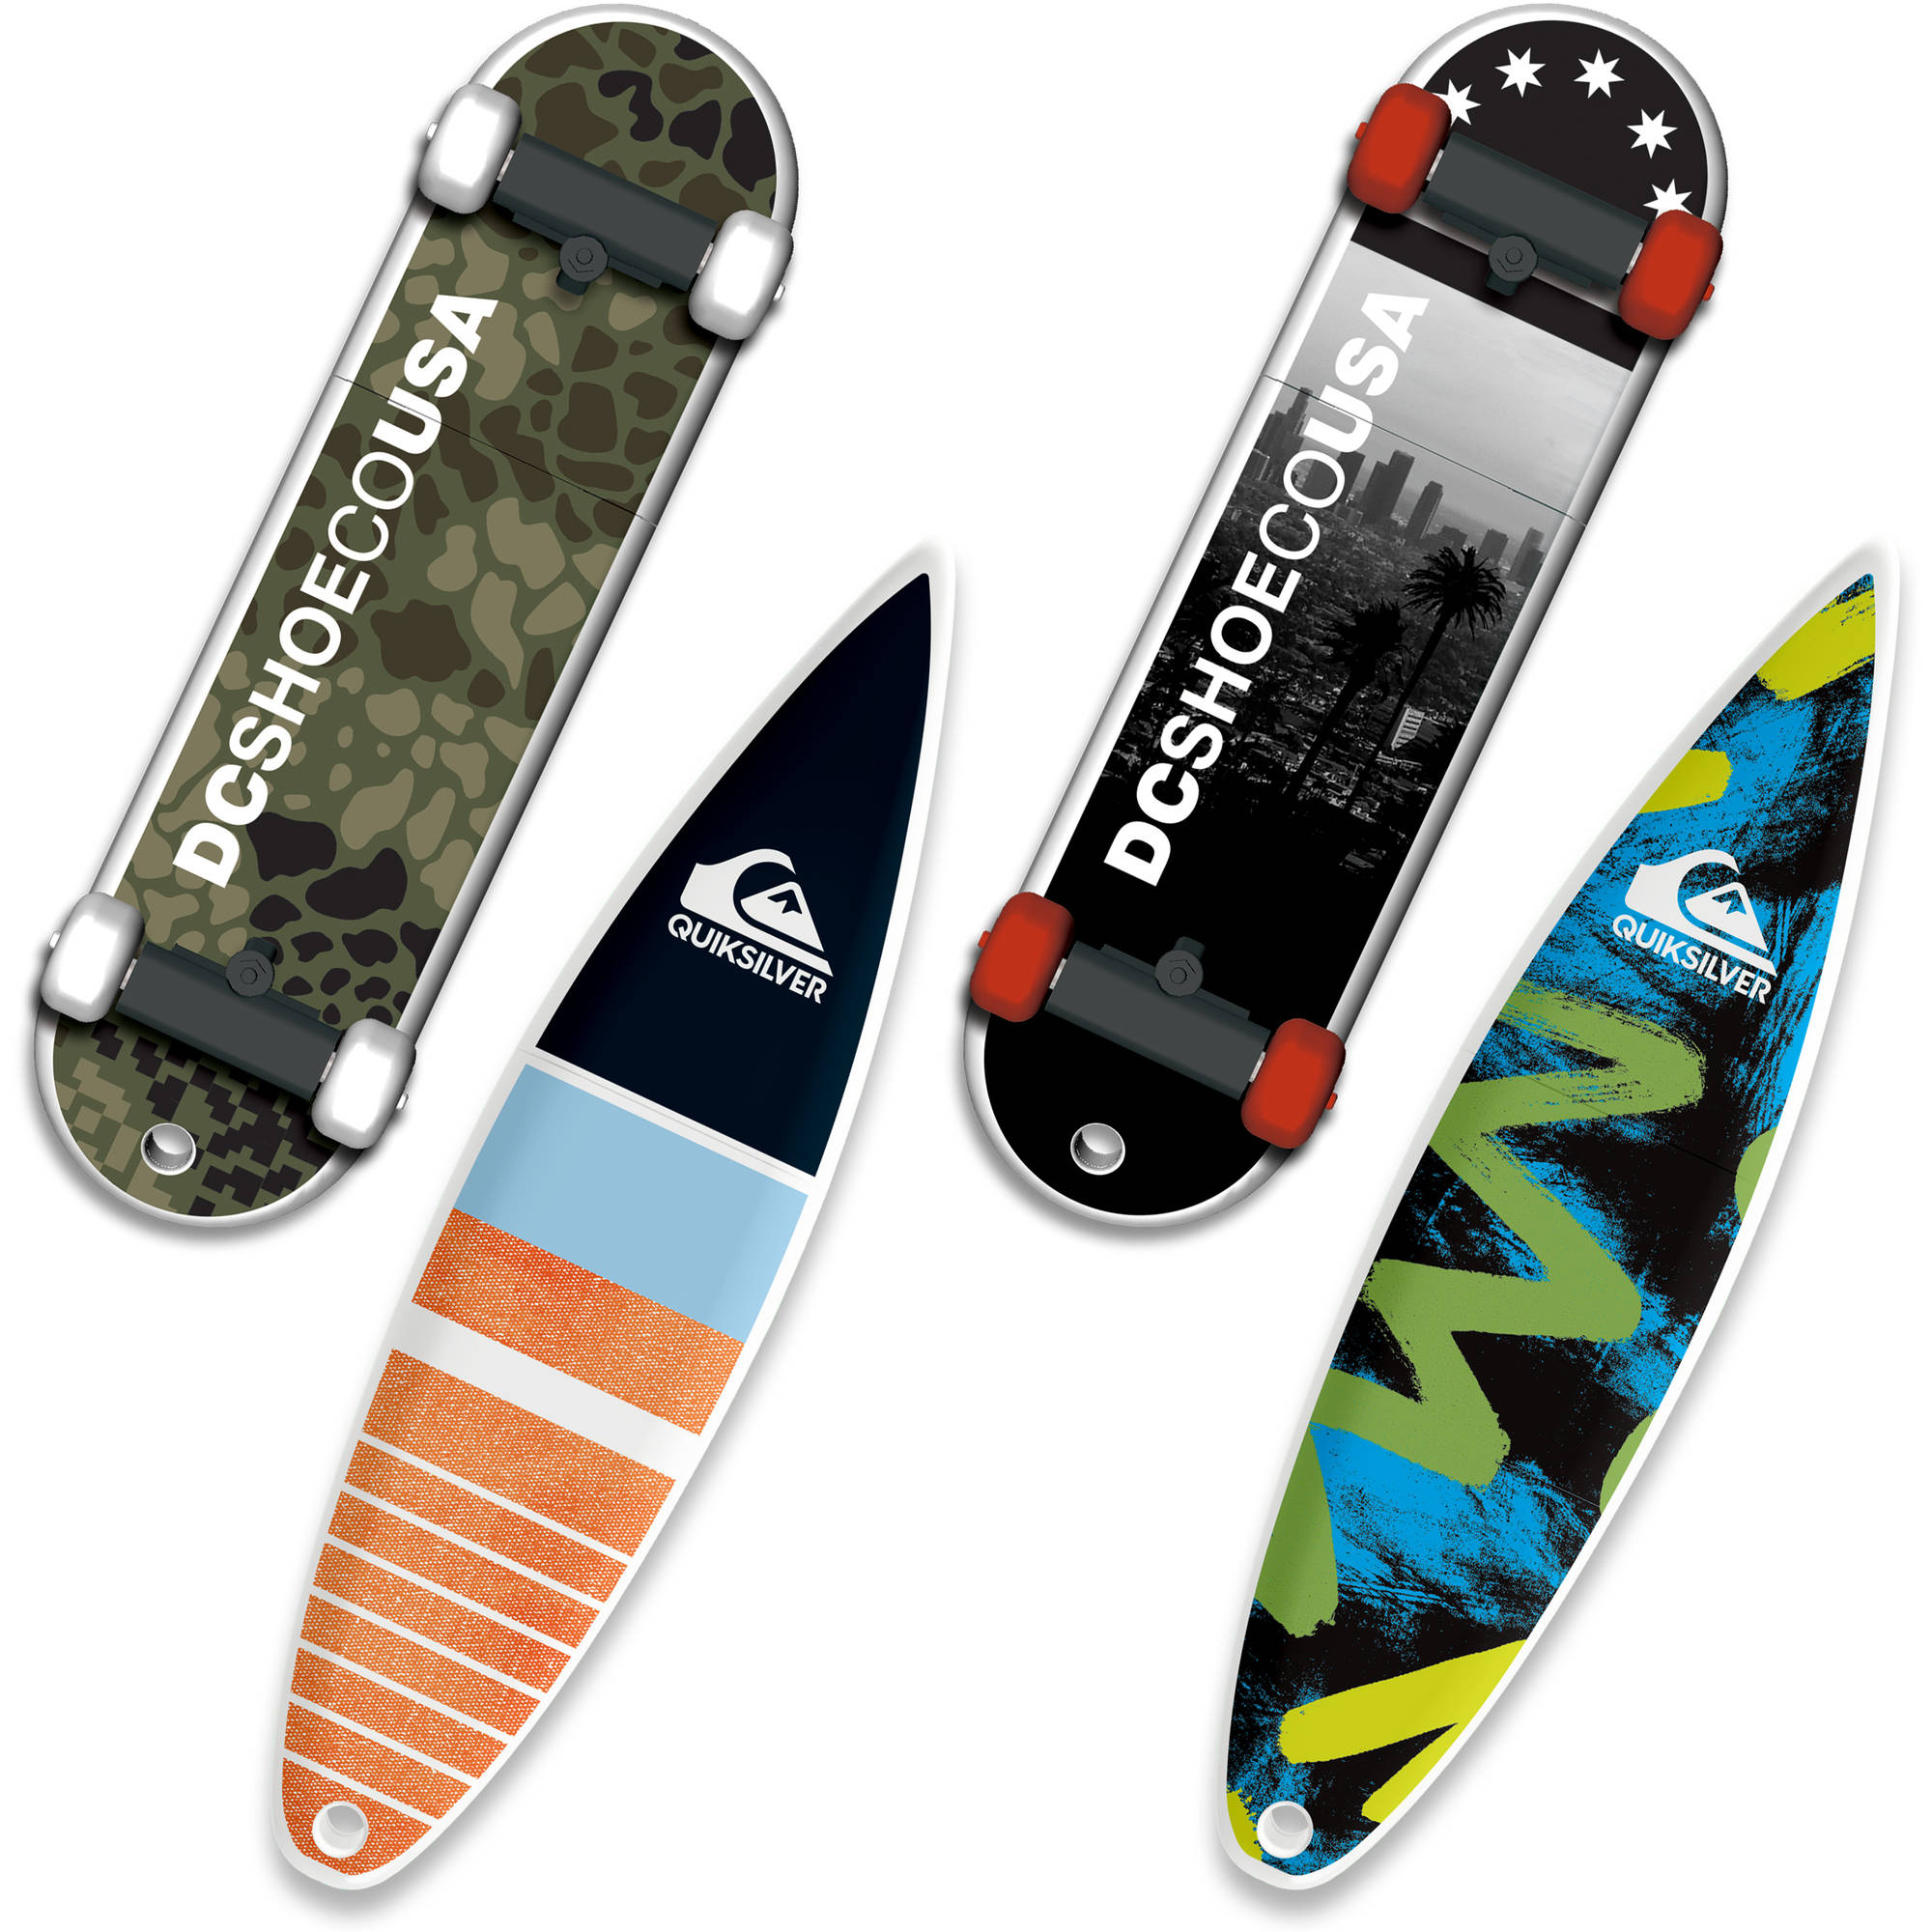 Image of 32GB EP ASD USB, DC Shoes SkateDrive and Quiksilver SurfDrive, 4-Pack